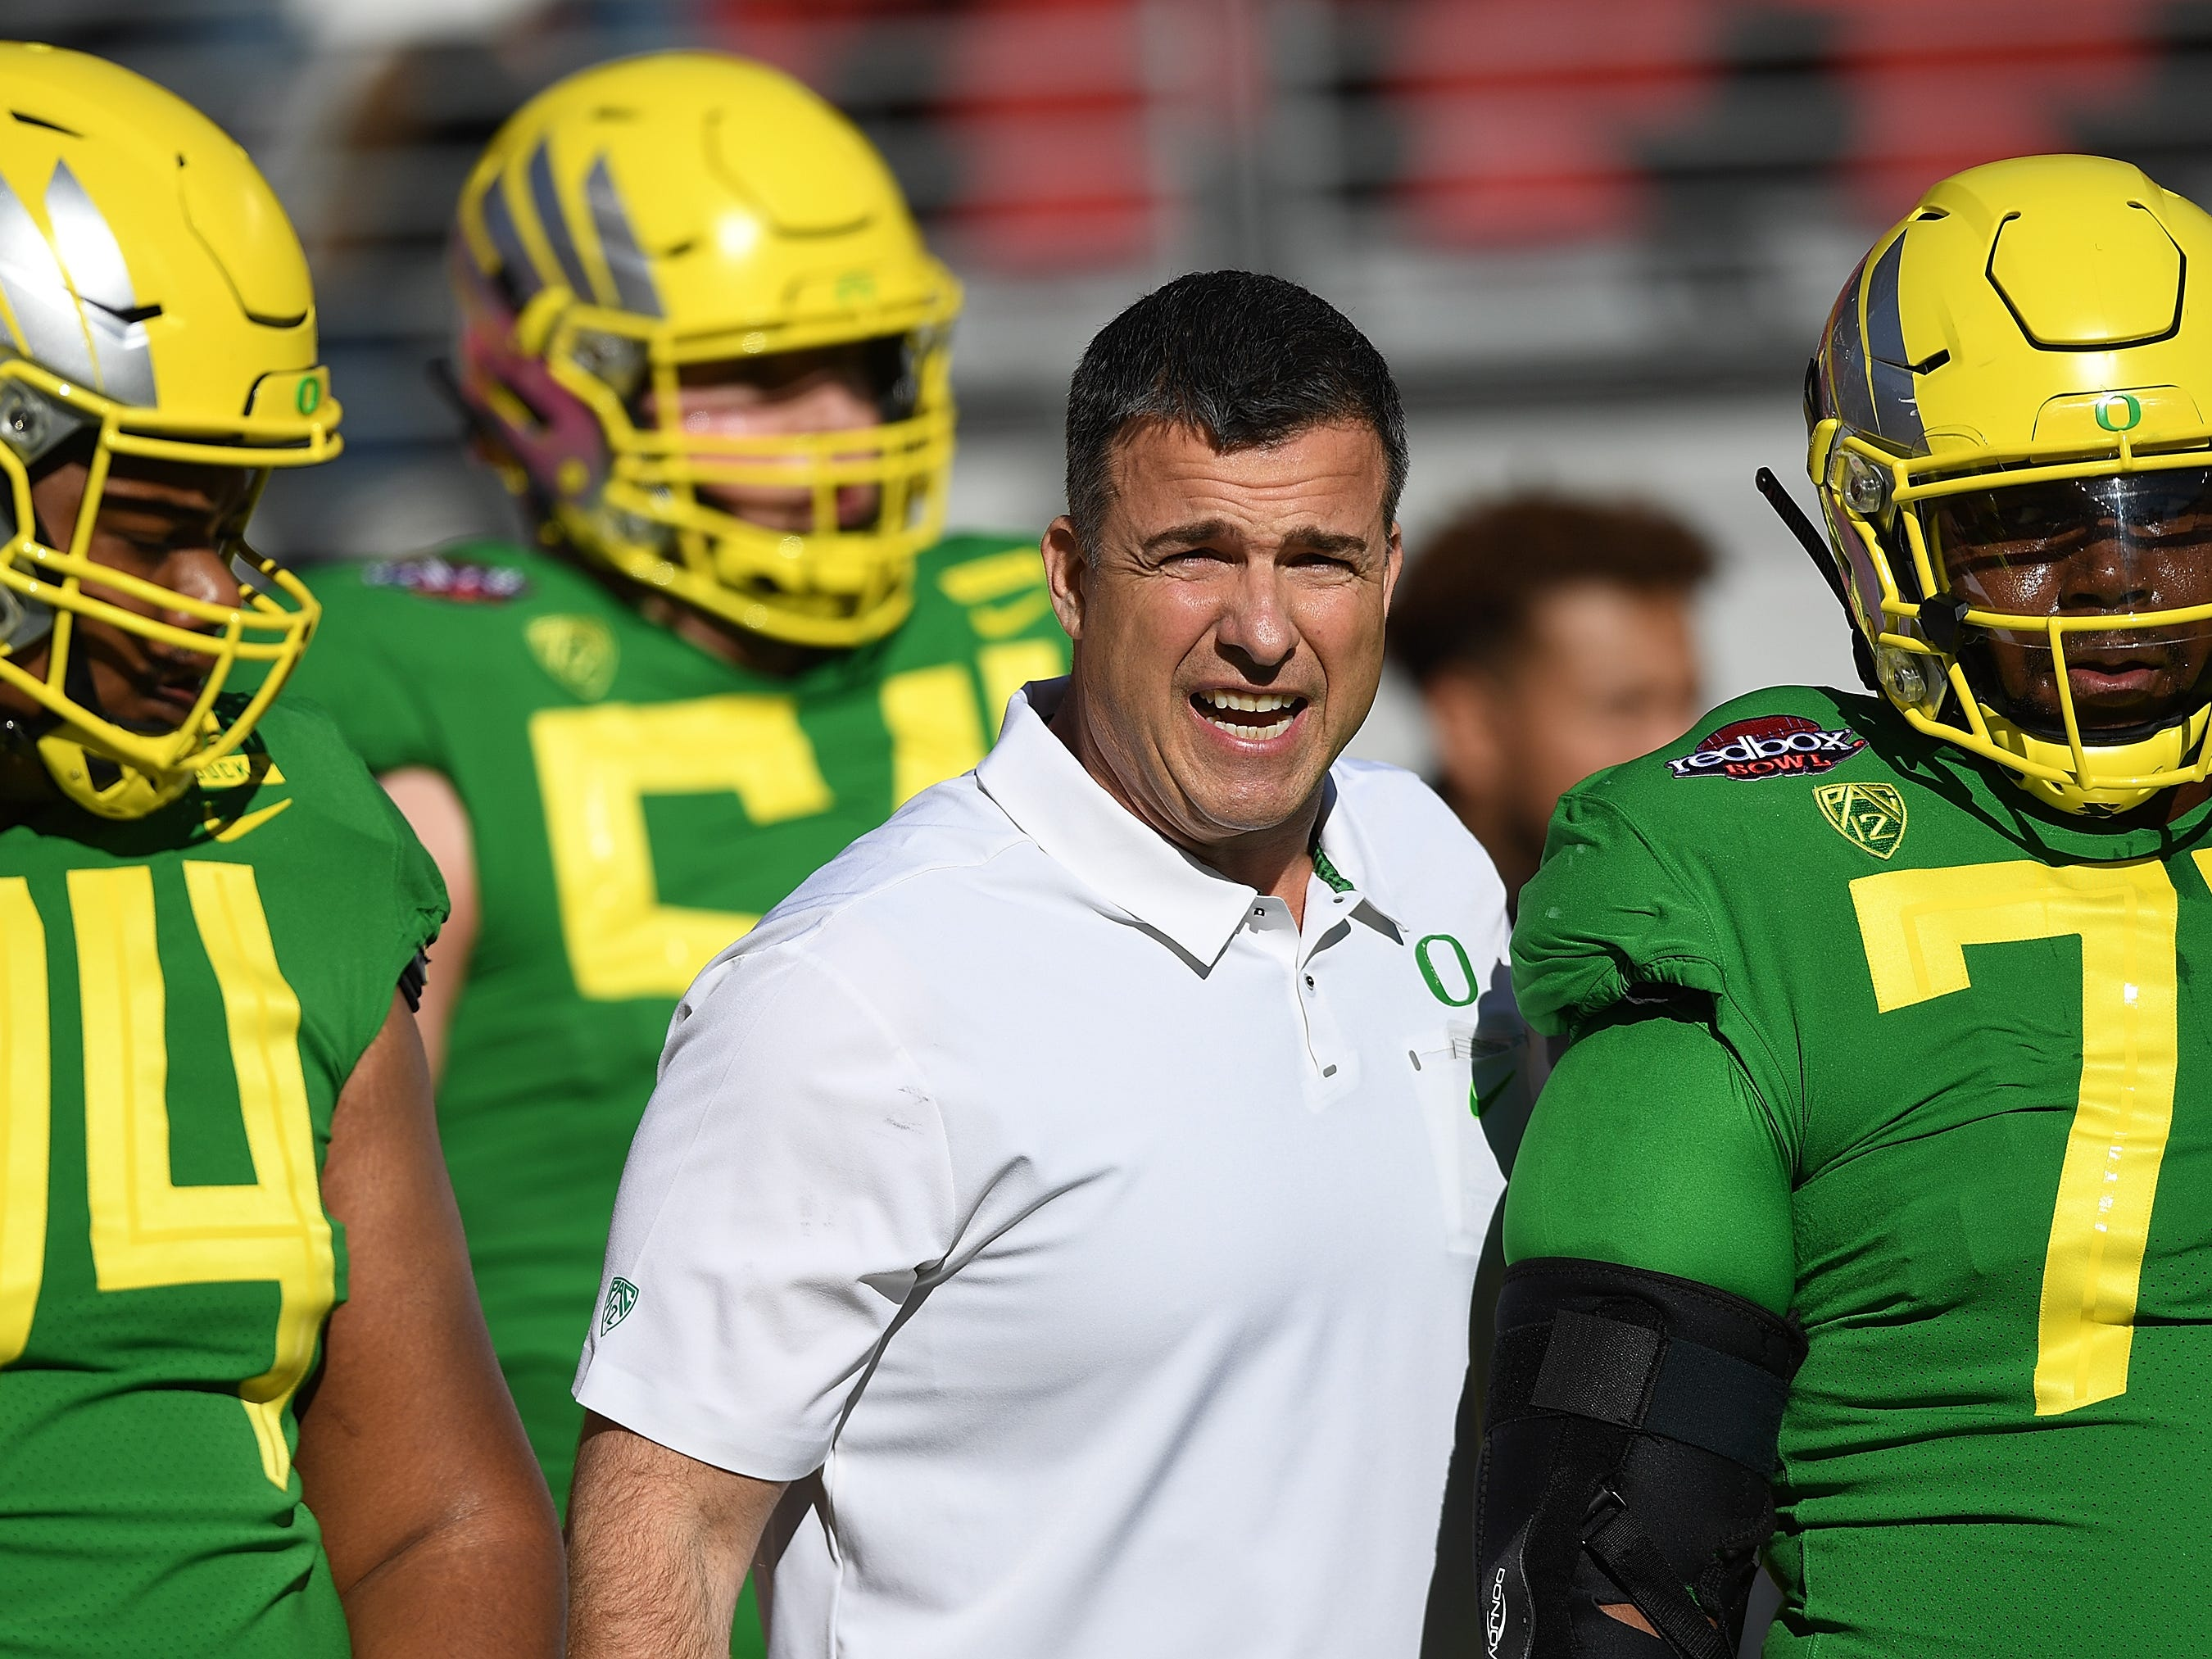 Head coach Mario Cristobal of the Oregon Ducks works with his players during pre-game warm ups prior to the start of the Redbox Bowl against the Michigan State Spartans at Levi's Stadium on December 31, 2018 in Santa Clara, California.